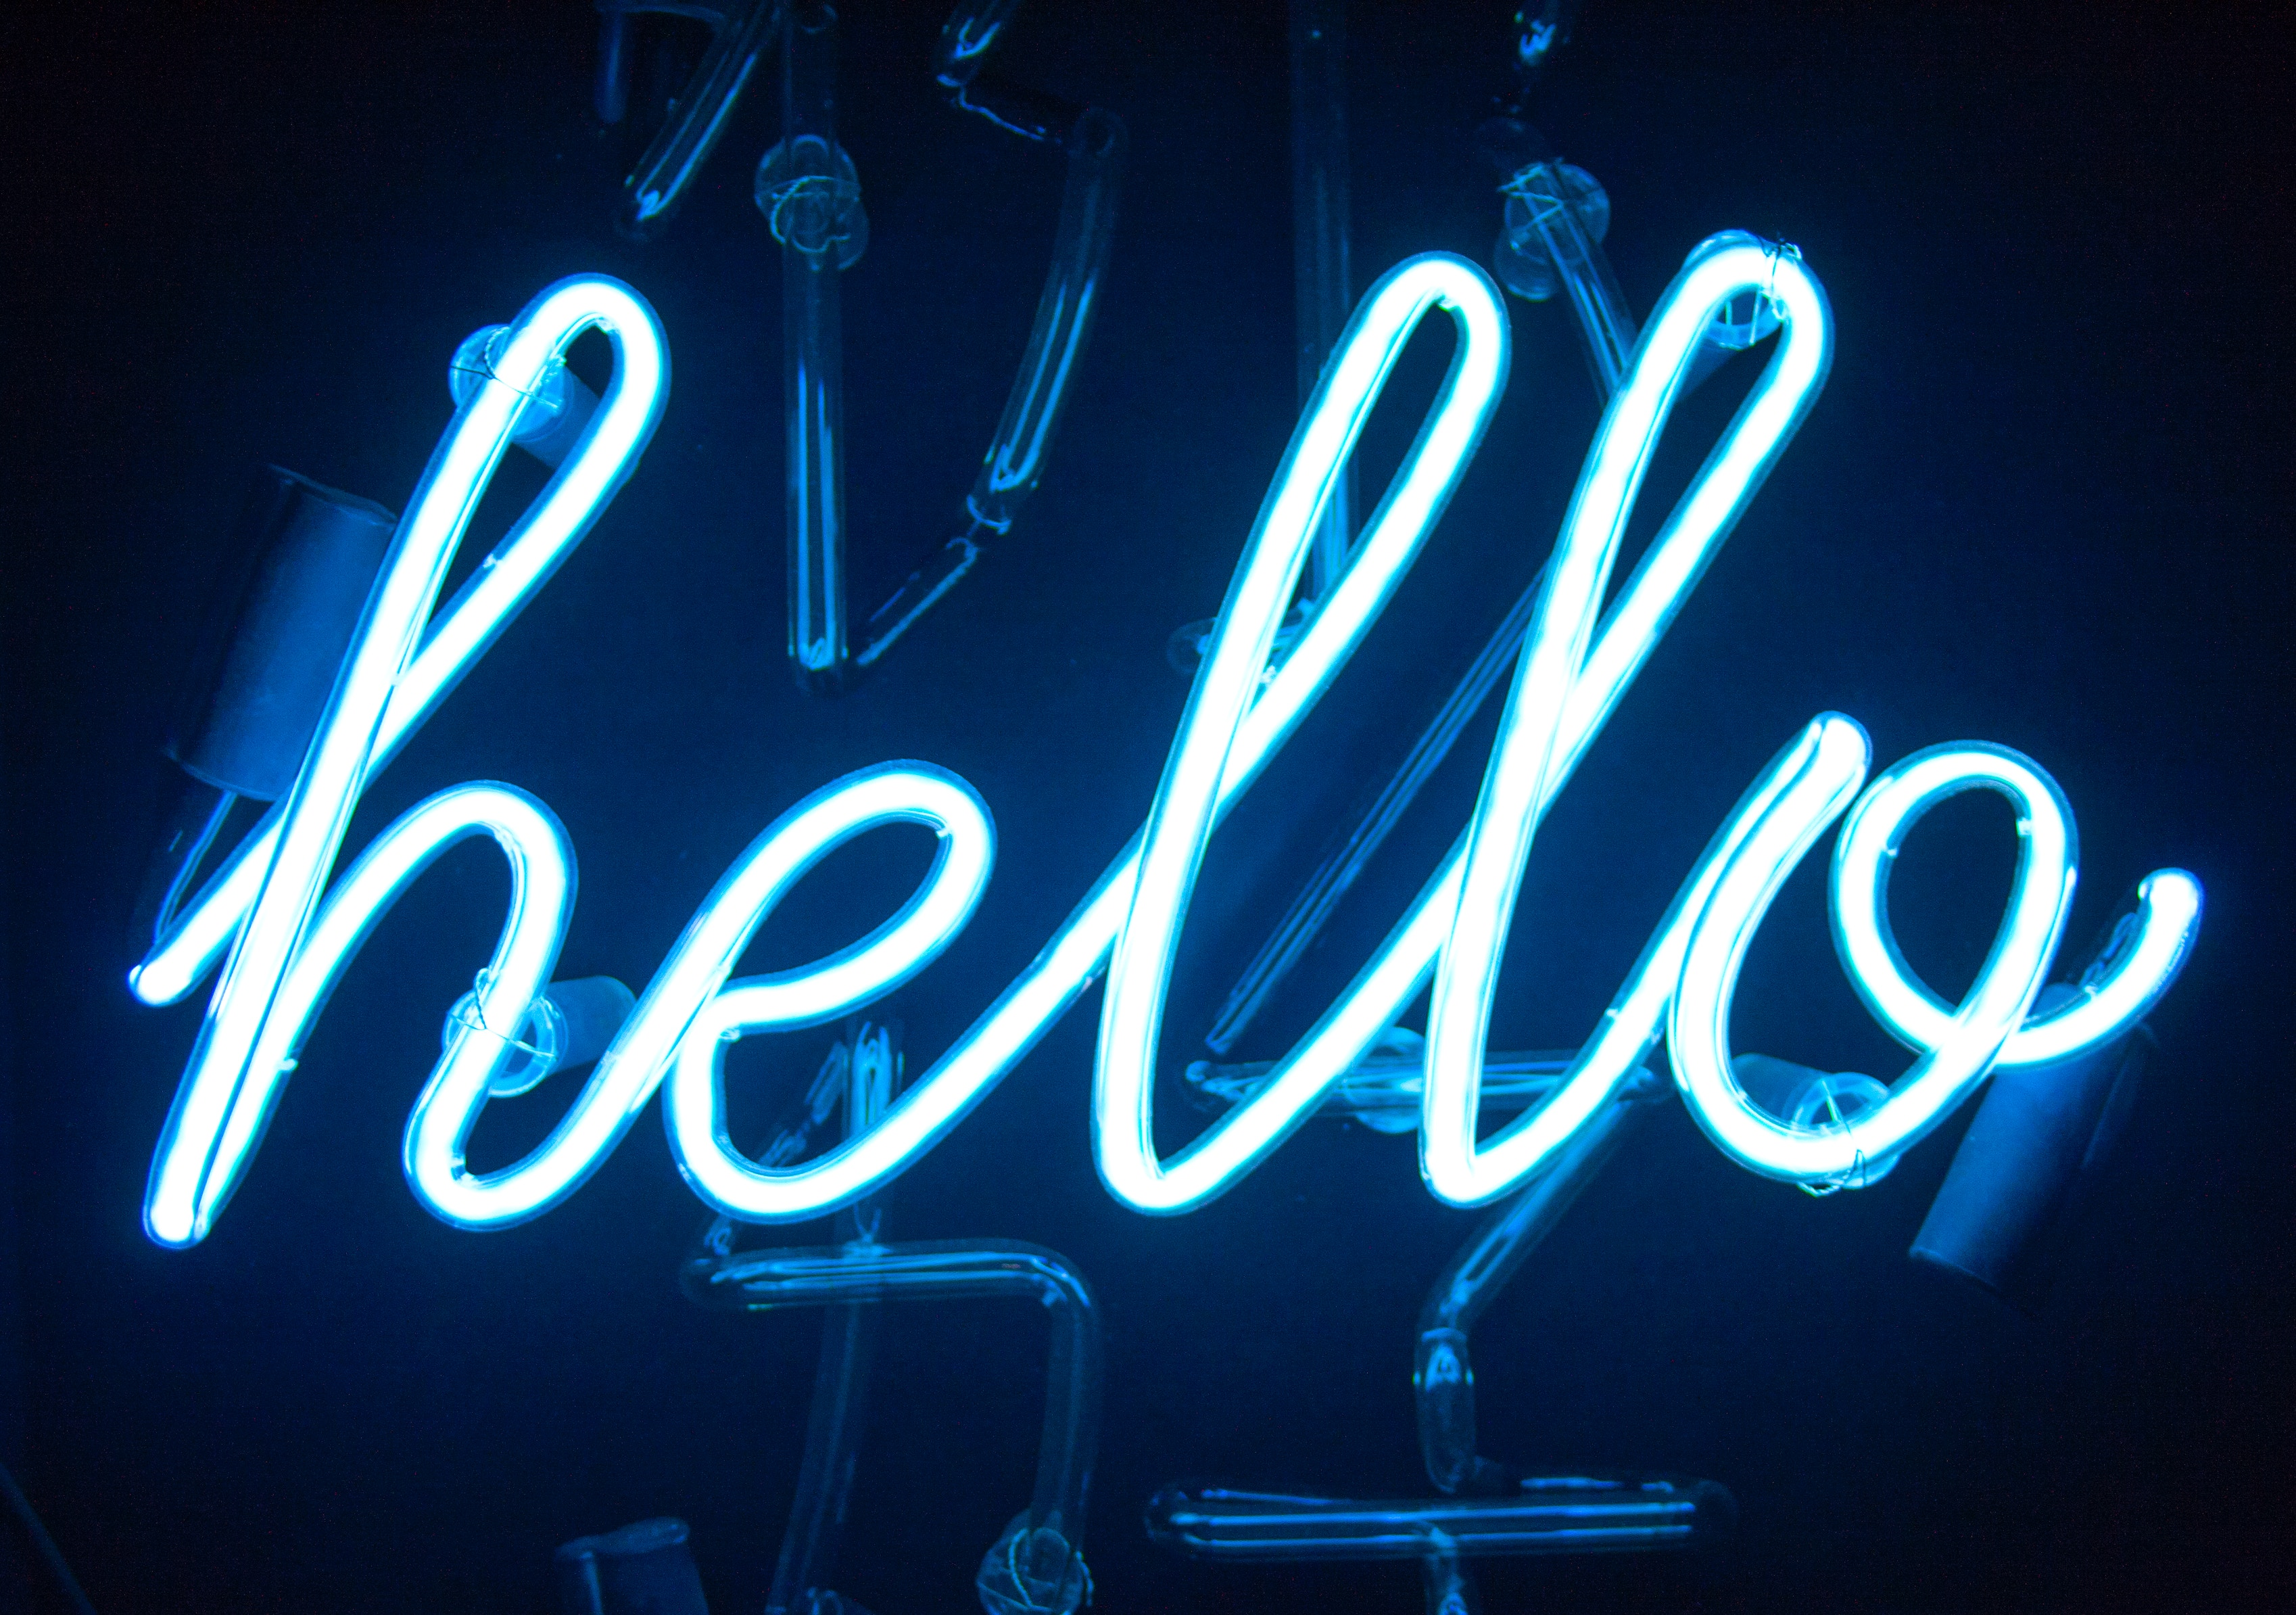 A neon blue sign that says hello.